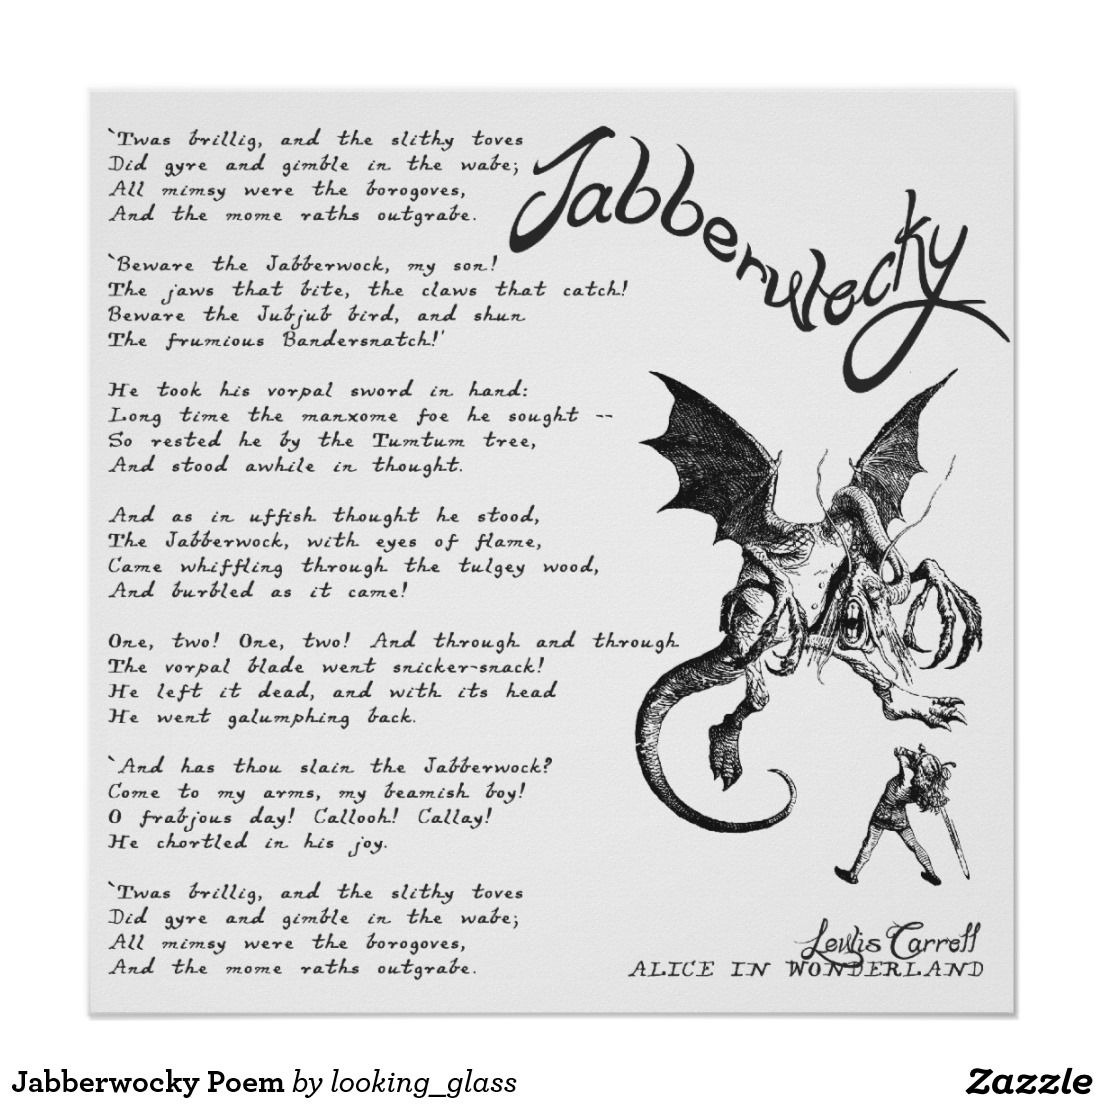 jabberwocky poem wallpaper - Google Search | POETRY | Pinterest ...